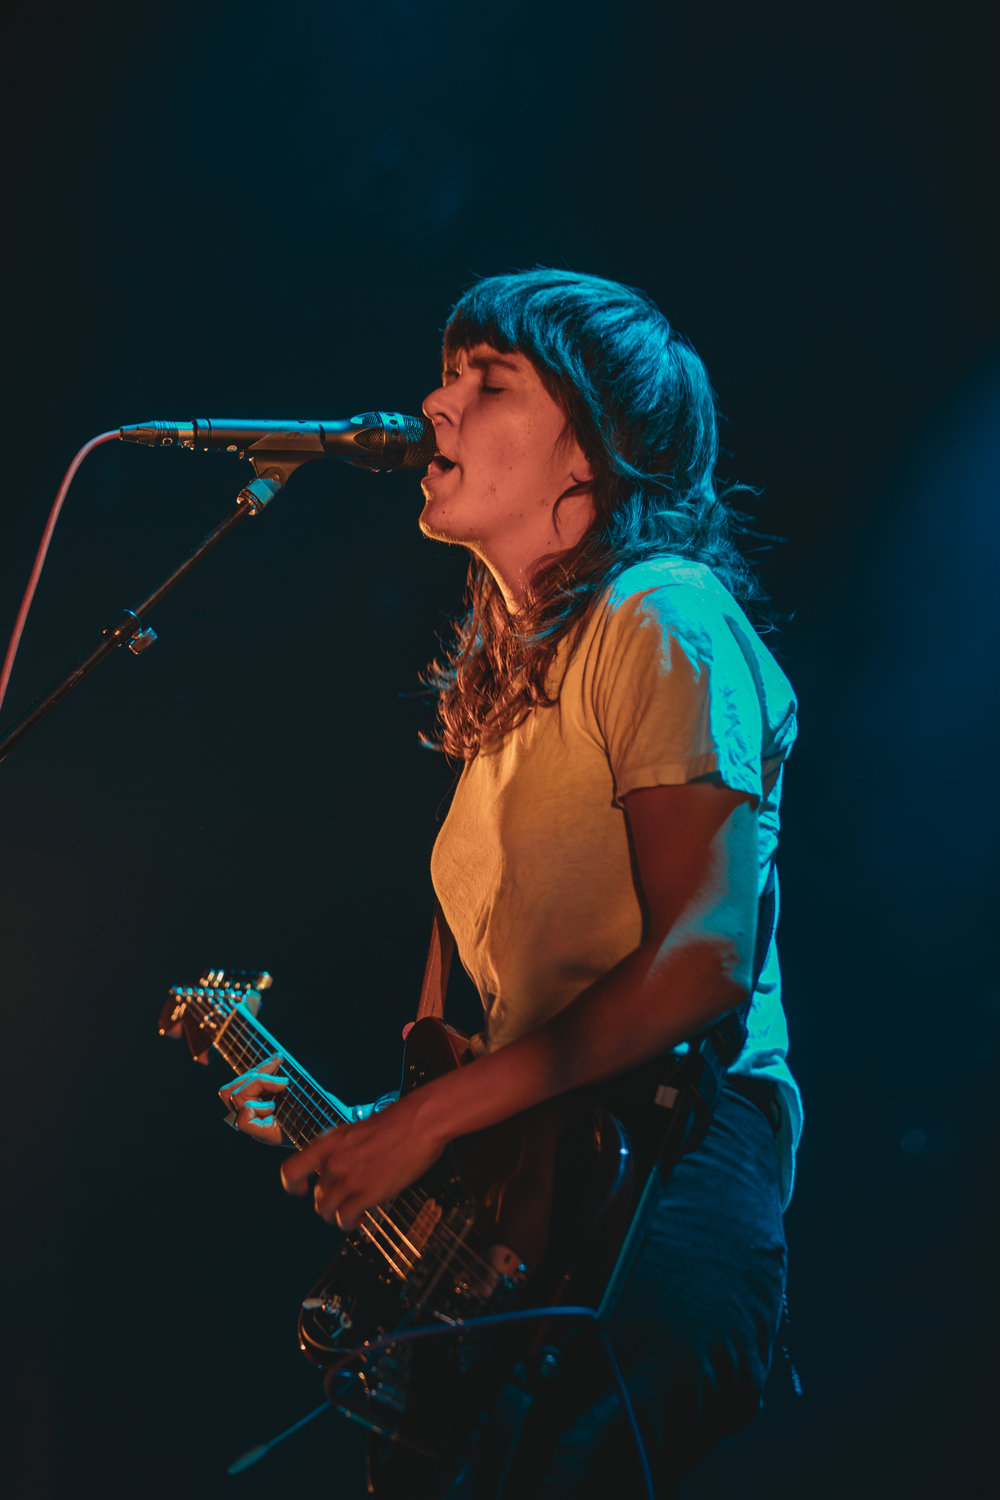 Courtney Barnett Ogden Theatre 09.29.2018 Nikki A. Rae Photography-24.jpg